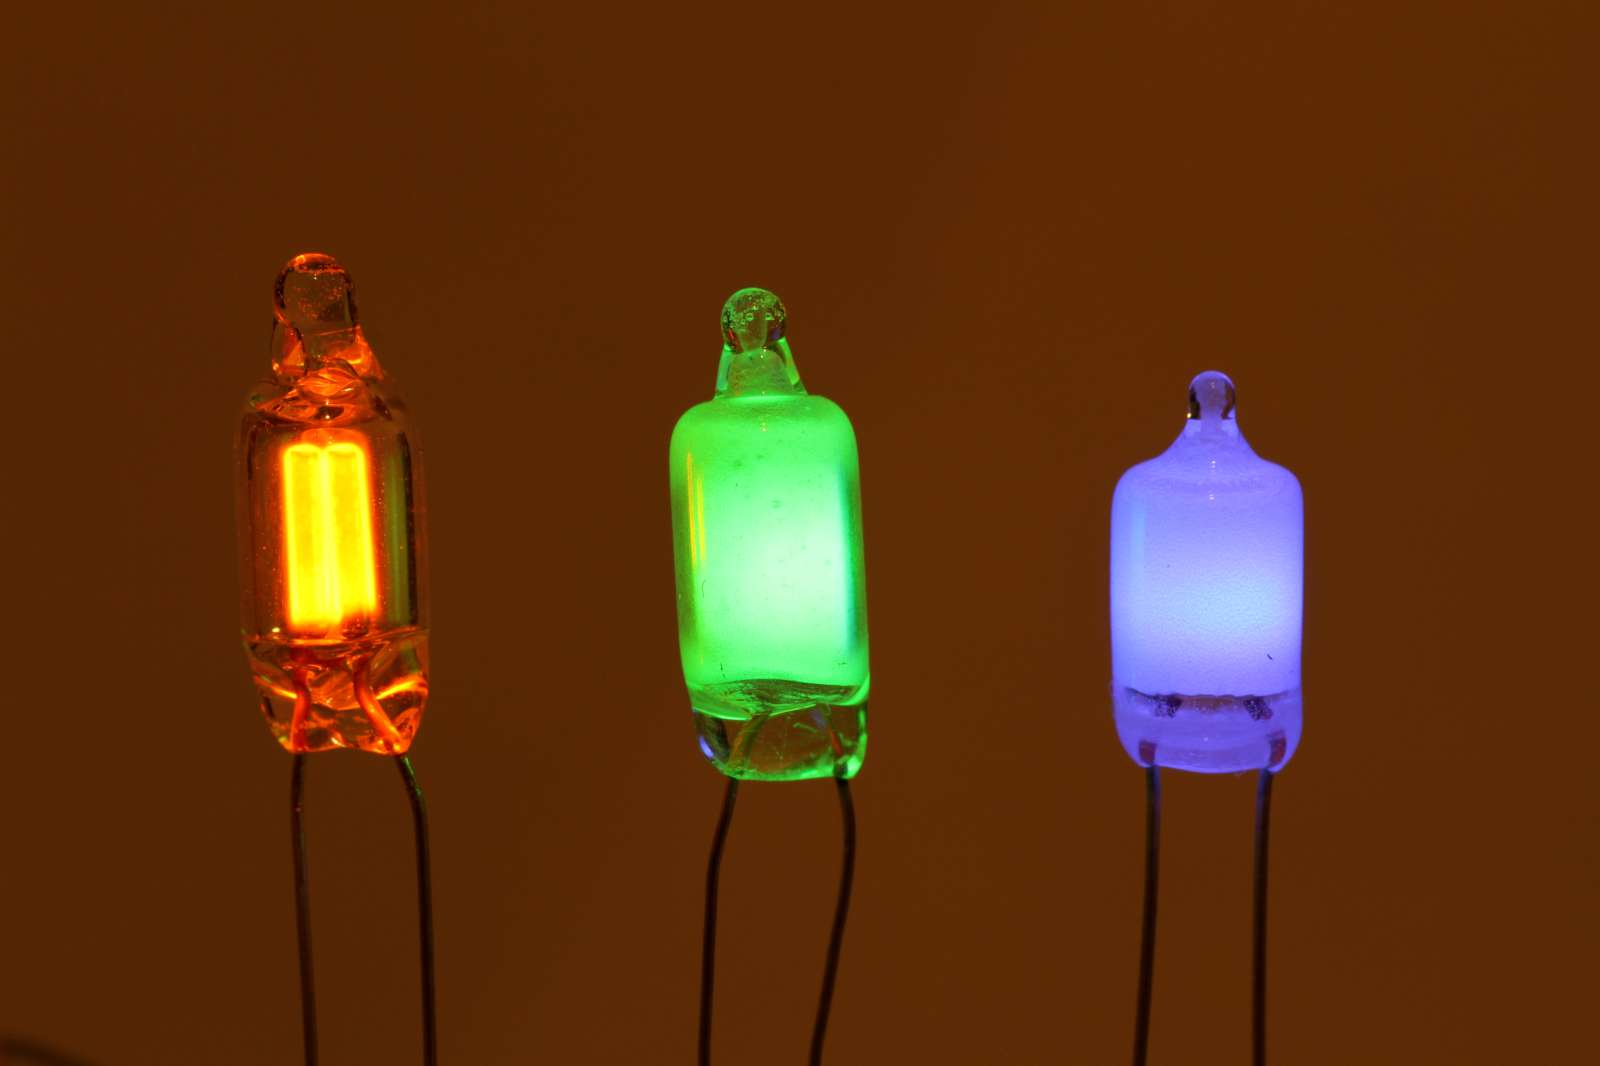 Neon Glow Lamps More Than Simple Light Sources